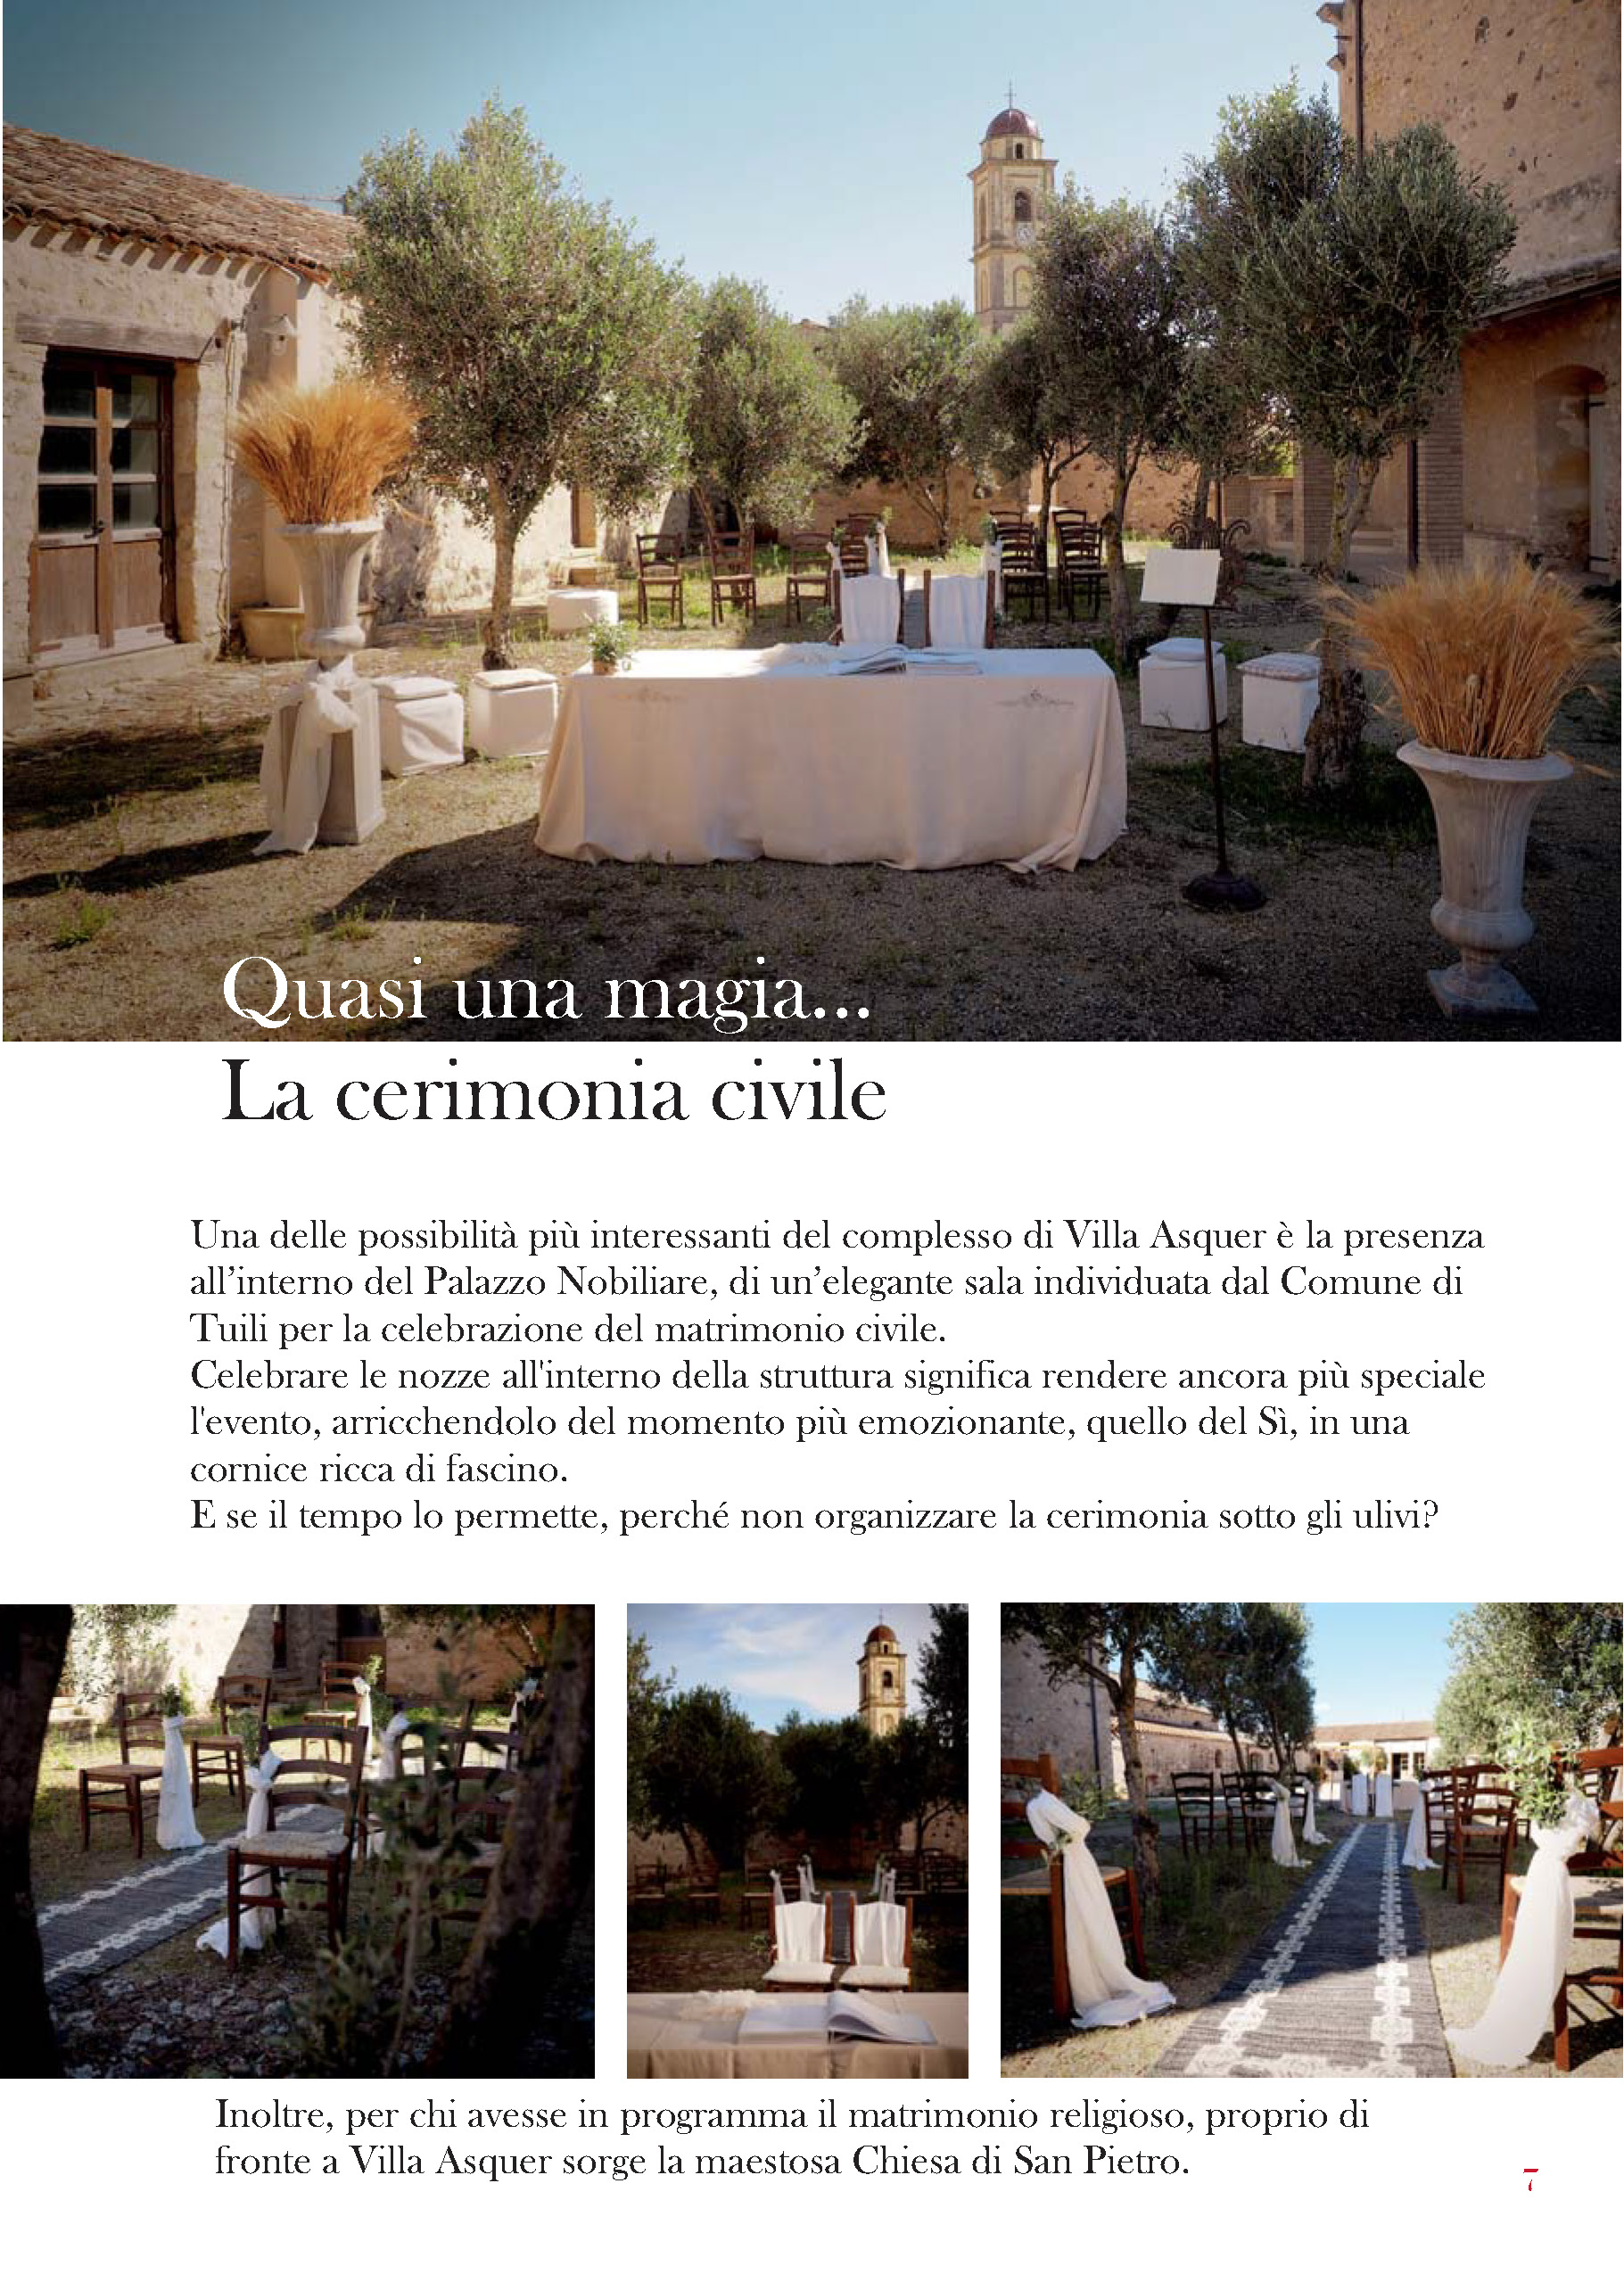 Celebrazione matrimonio all'eprto